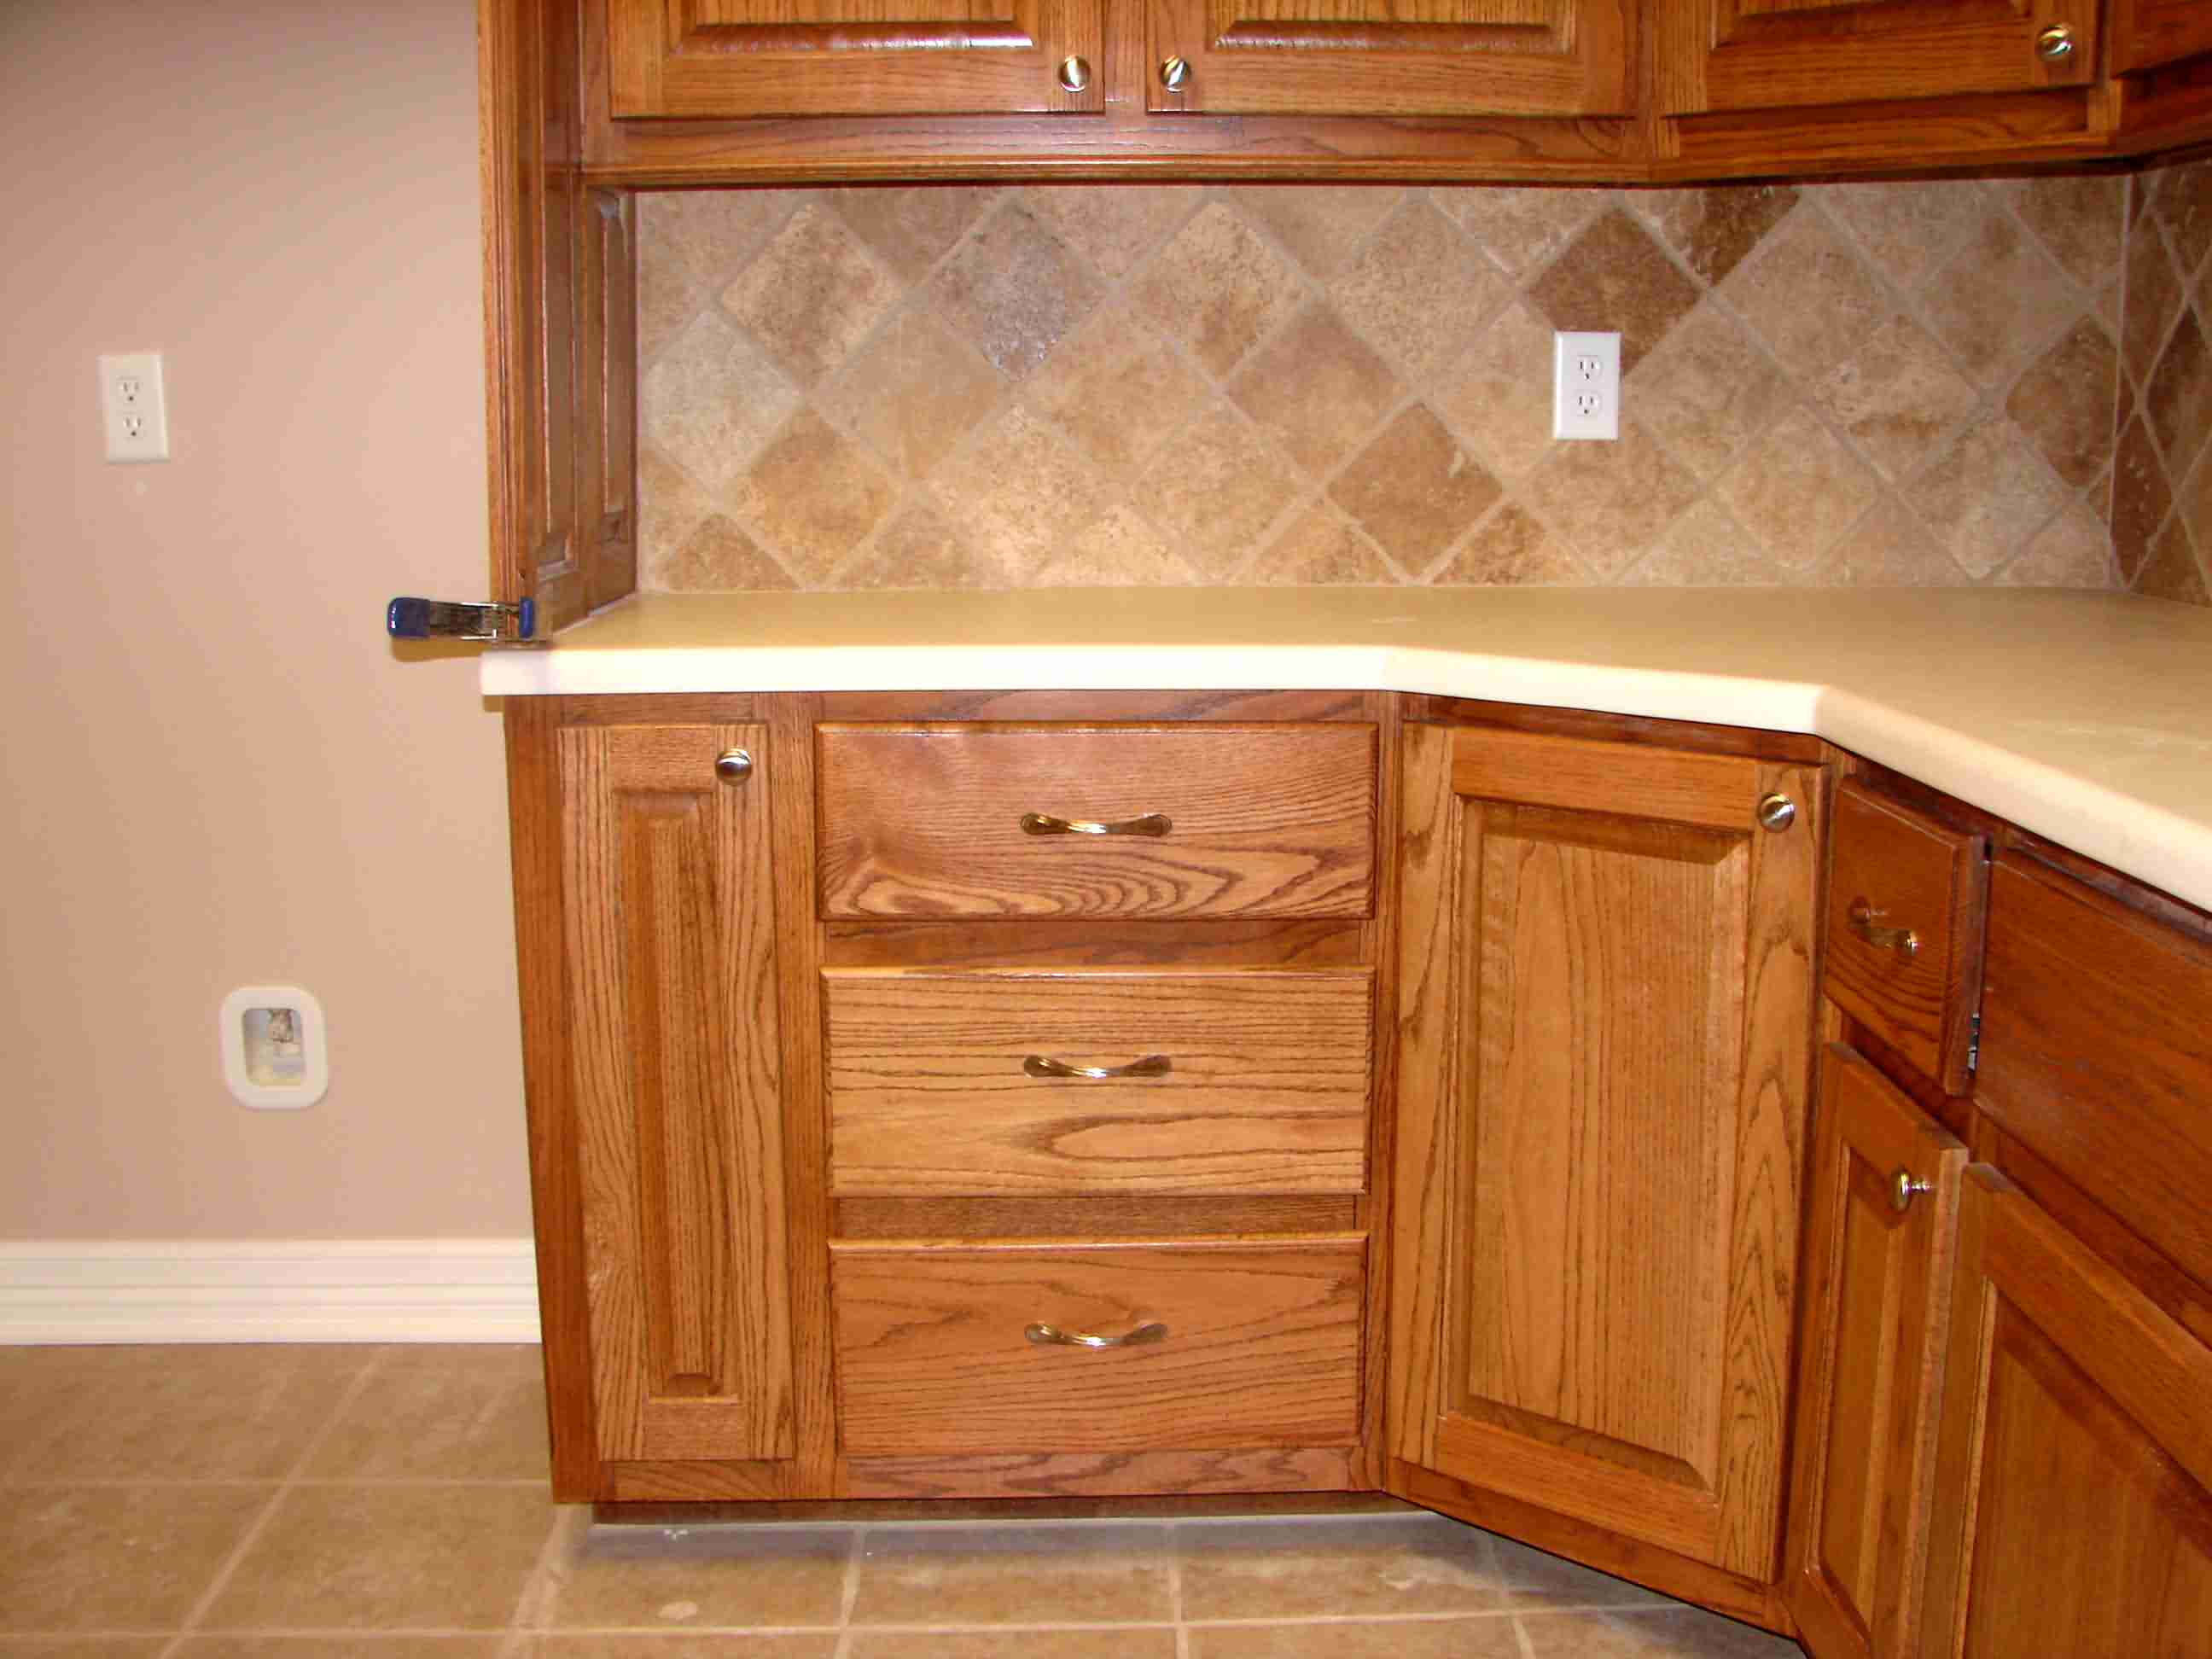 Kimboleeey — Corner Kitchen Cabinet Ideas. Glass Basement Doors. Rust Oleum Epoxyshield Basement Floor Coating. Walkout Basement Pictures. Nature Stone Basement Flooring. Basement Bathroom Remodeling. Installing Laminate Flooring On Concrete Basement. Basement Memebrane. Basement Apartments For Rent Etobicoke